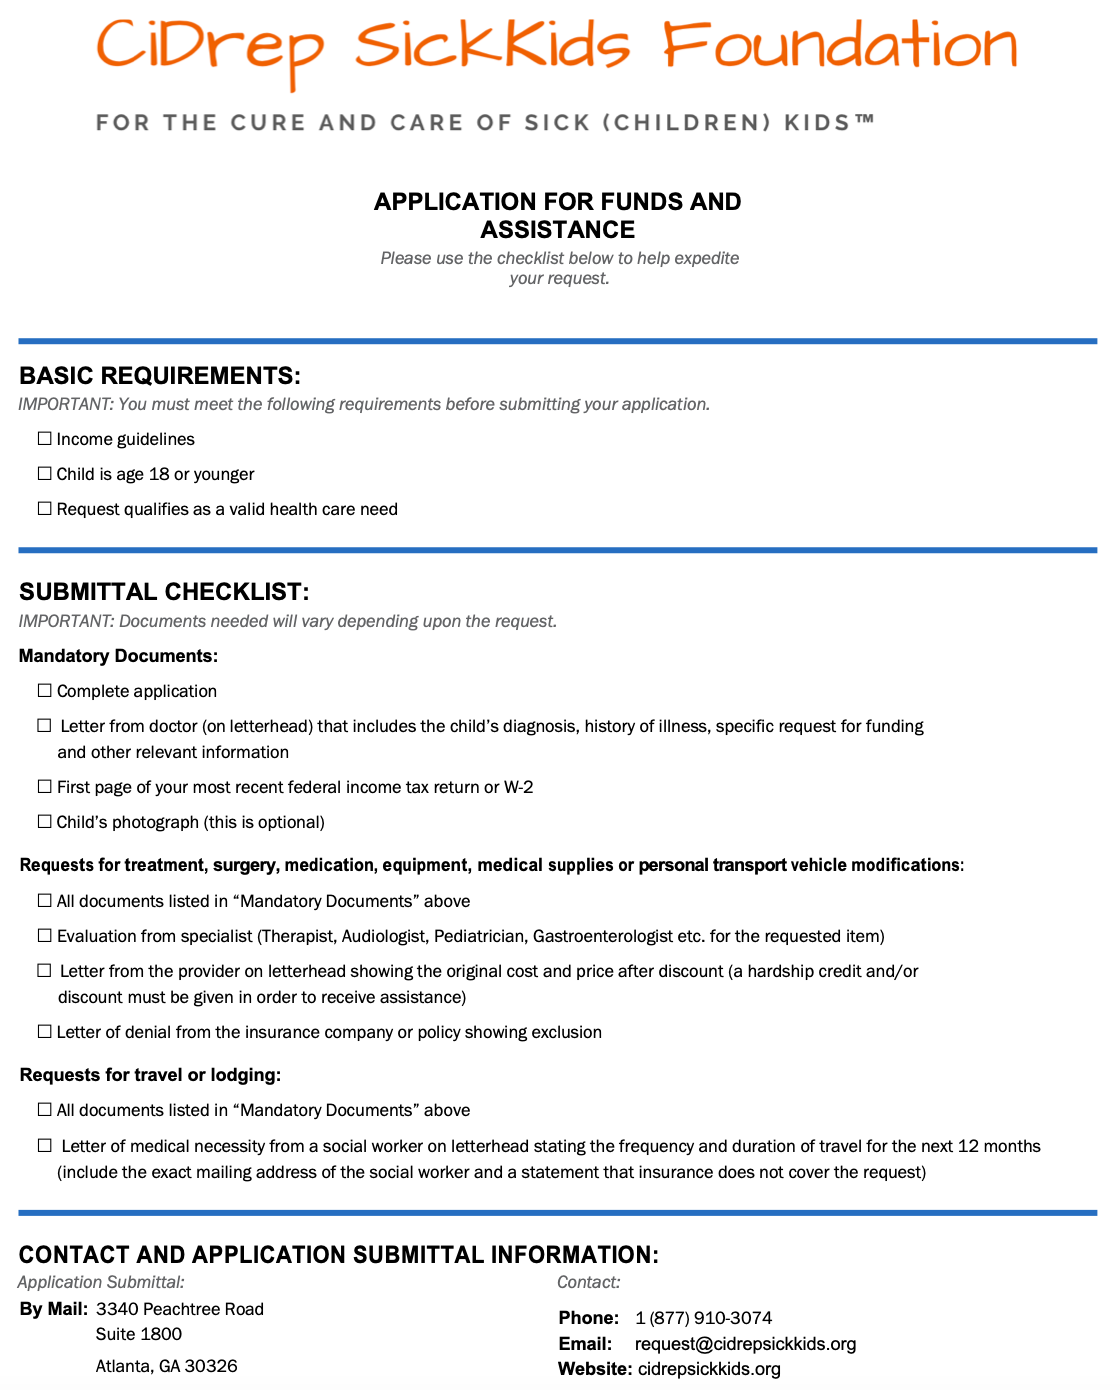 CiDrep SickKids Application